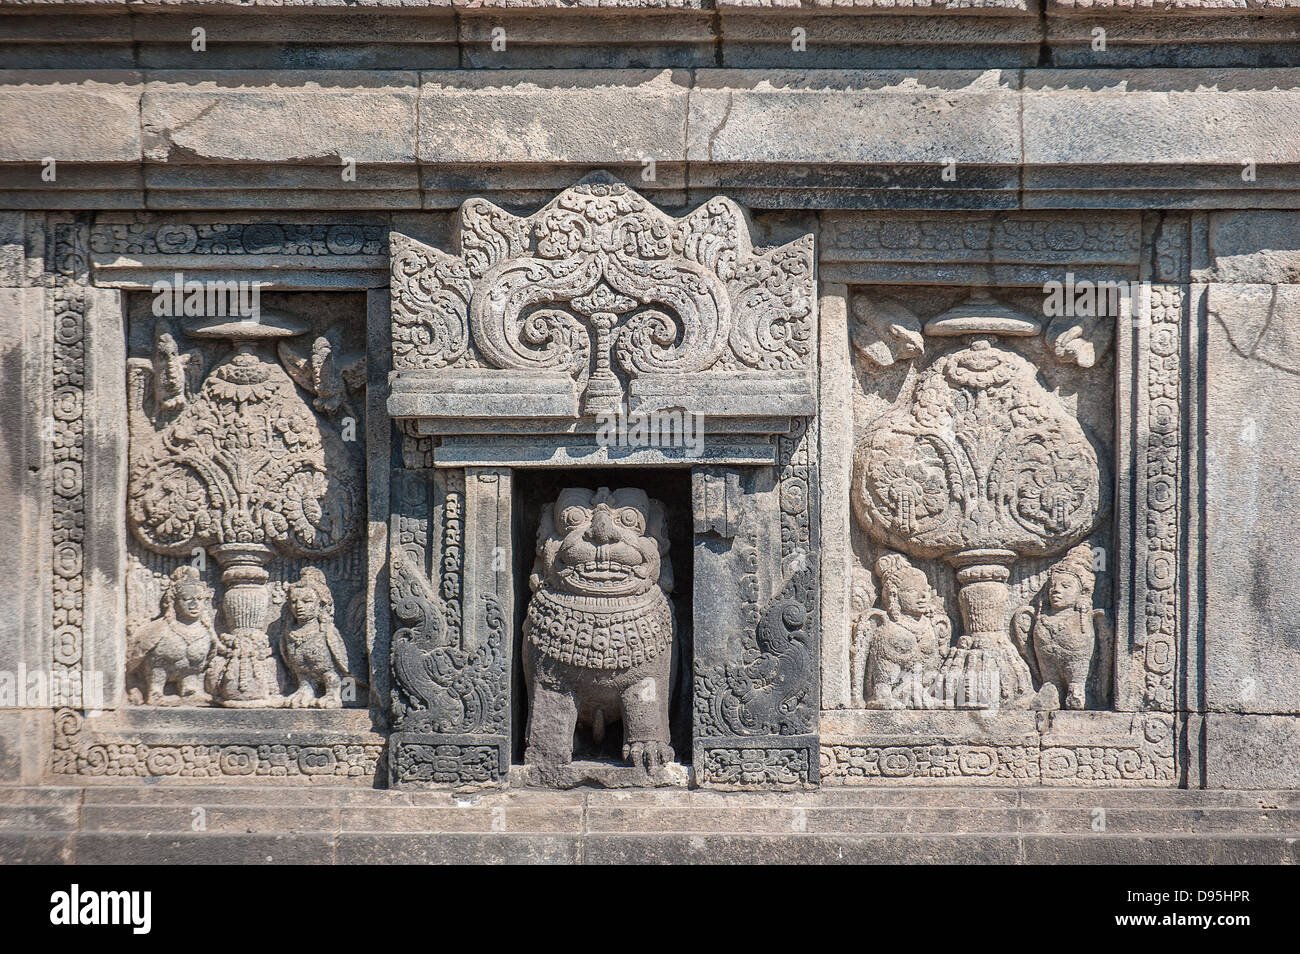 Bas-reliefs of Prambanan temple, Java, Indonesia - Stock Image